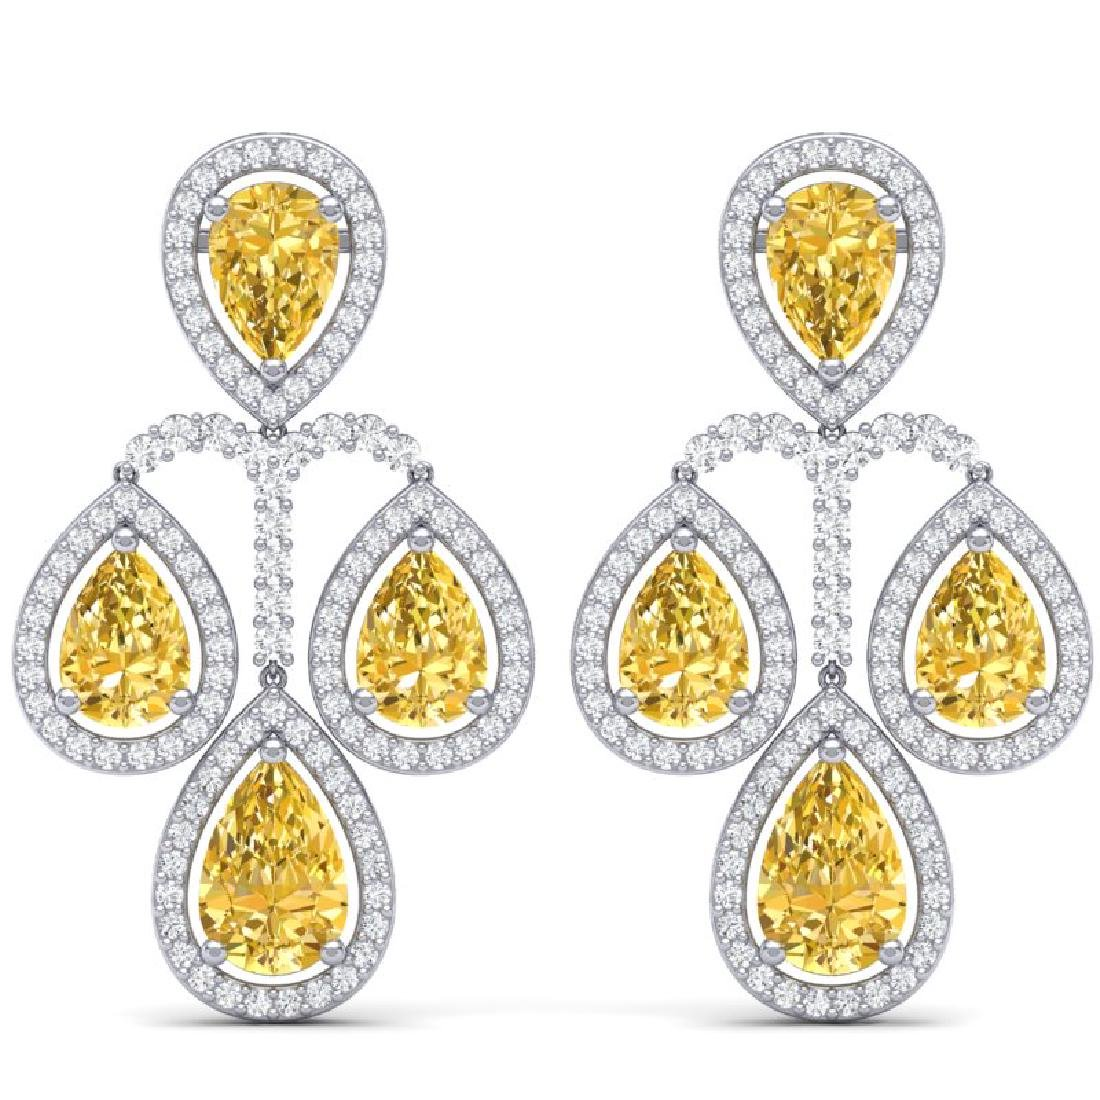 27.85 CTW Royalty Canary Citrine & VS Diamond Earrings